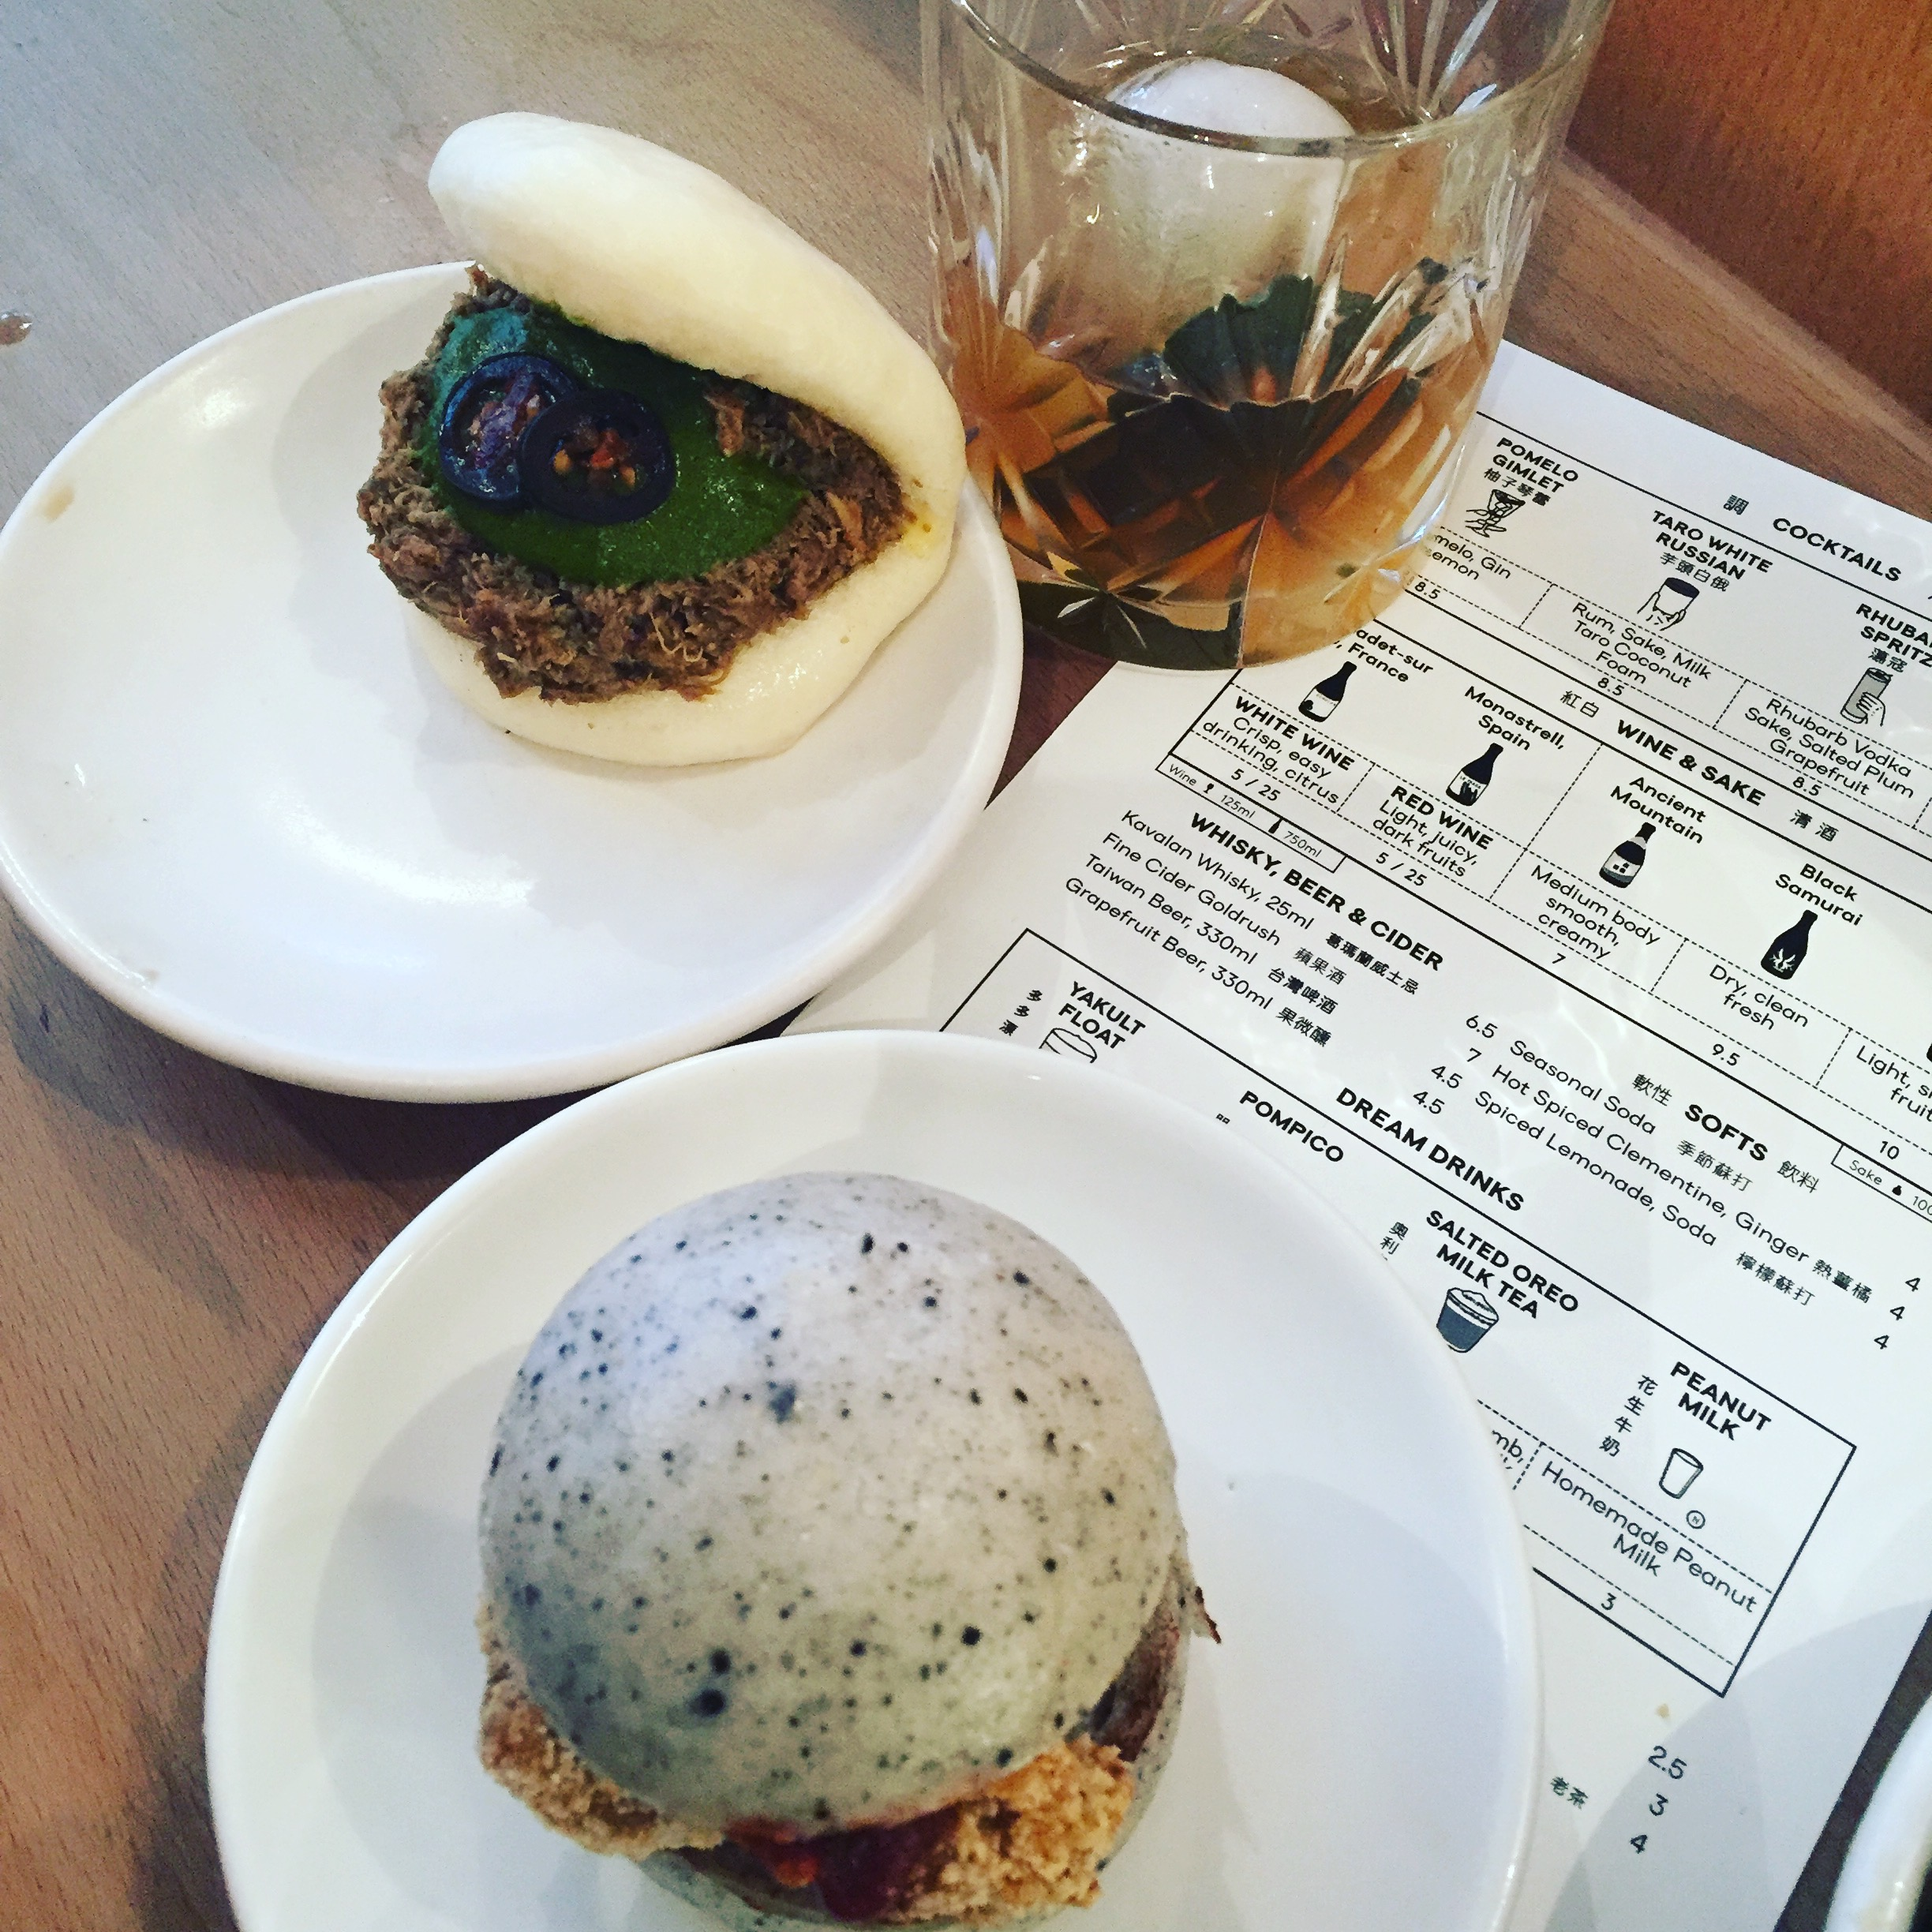 Creative steam buns and a tasty cocktail at Bao Soho